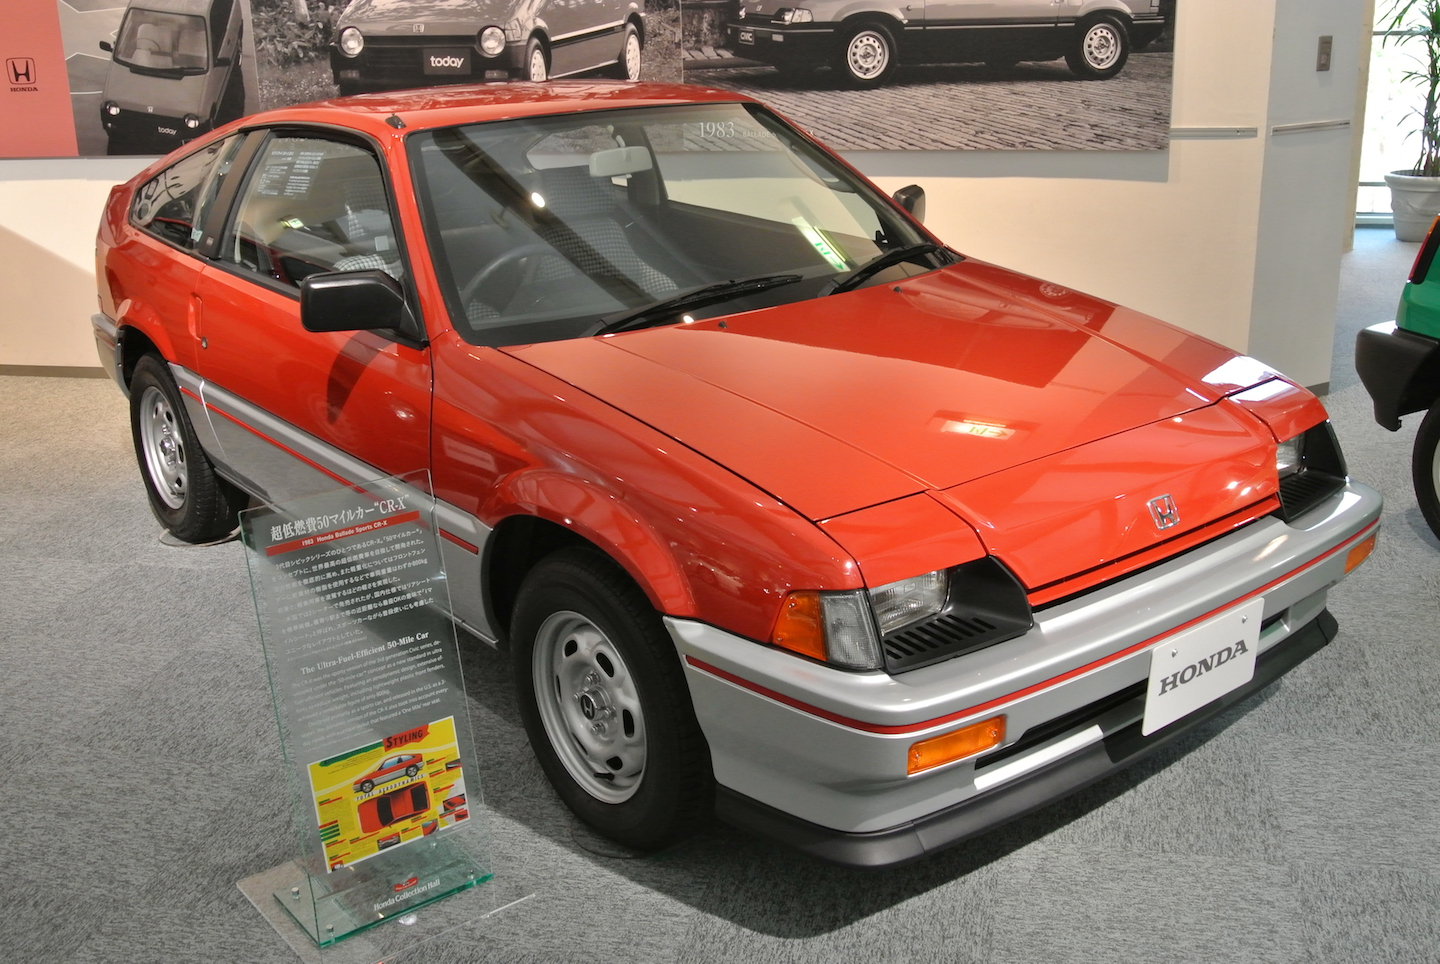 Honda Cr X >> Crucial Cars We Put The Spotlight On The Honda Crx